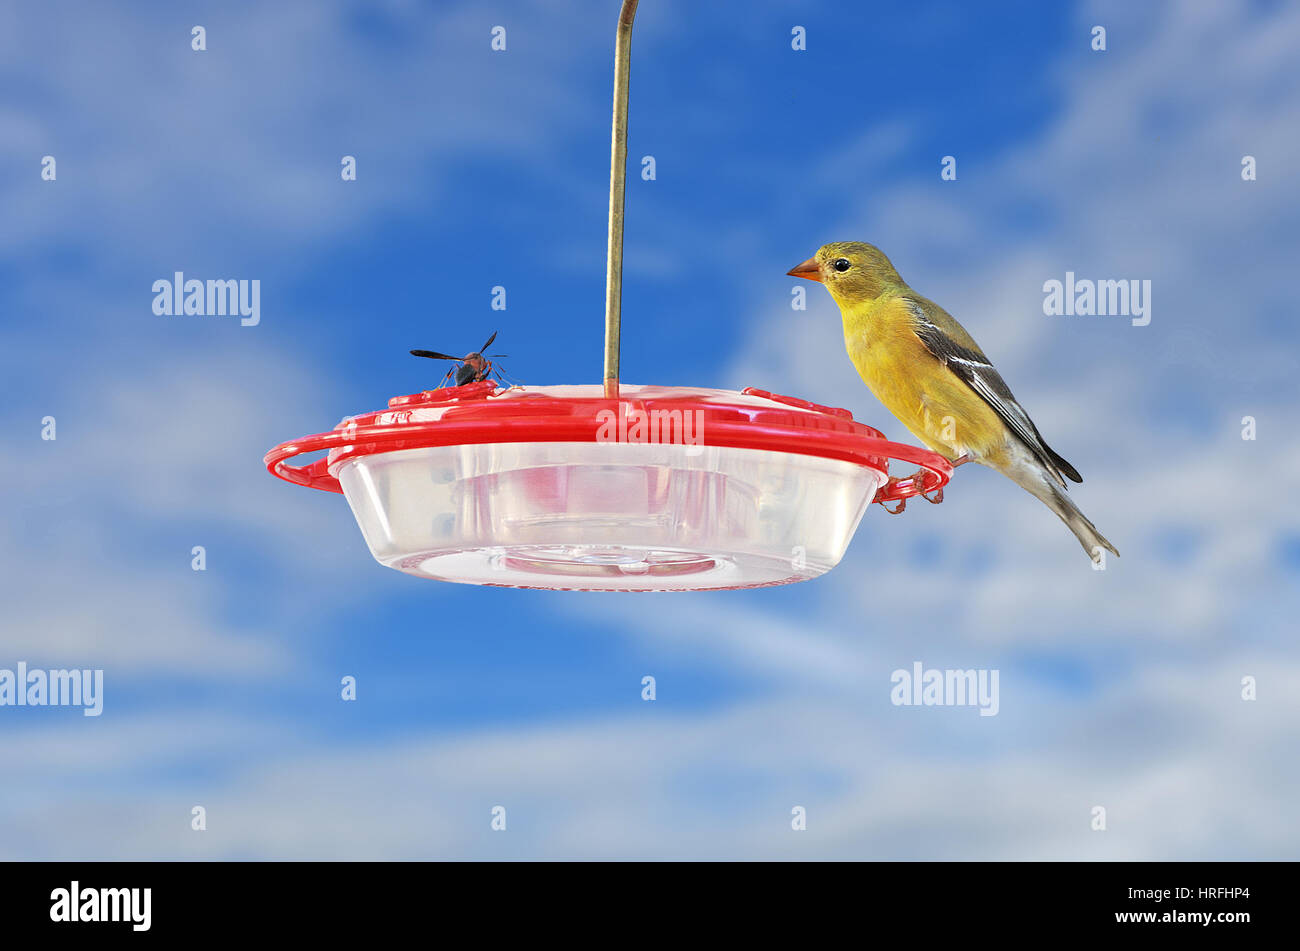 A large Wasp and a American Goldfinch (Spinus tristis) face off on a bird feeder. - Stock Image